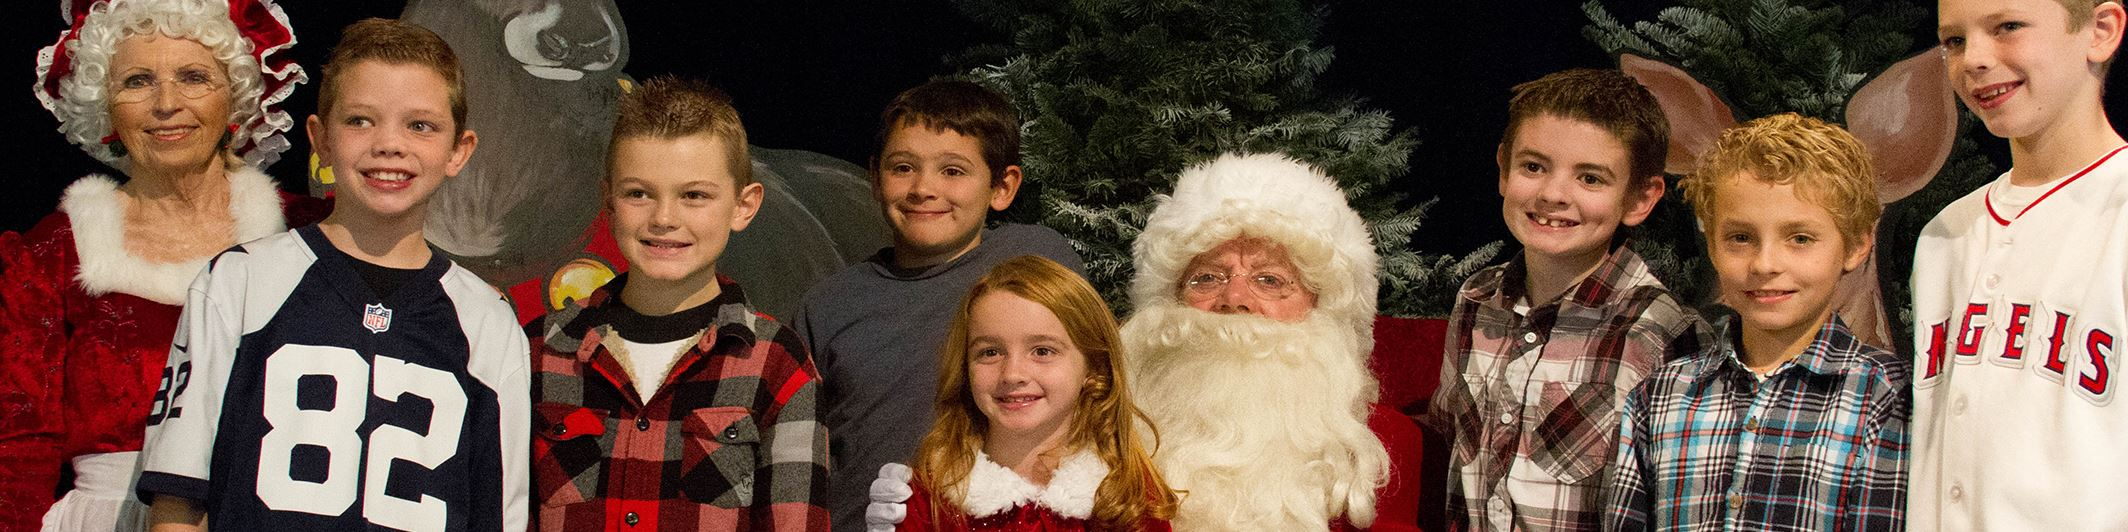 Children taking picture with Santa